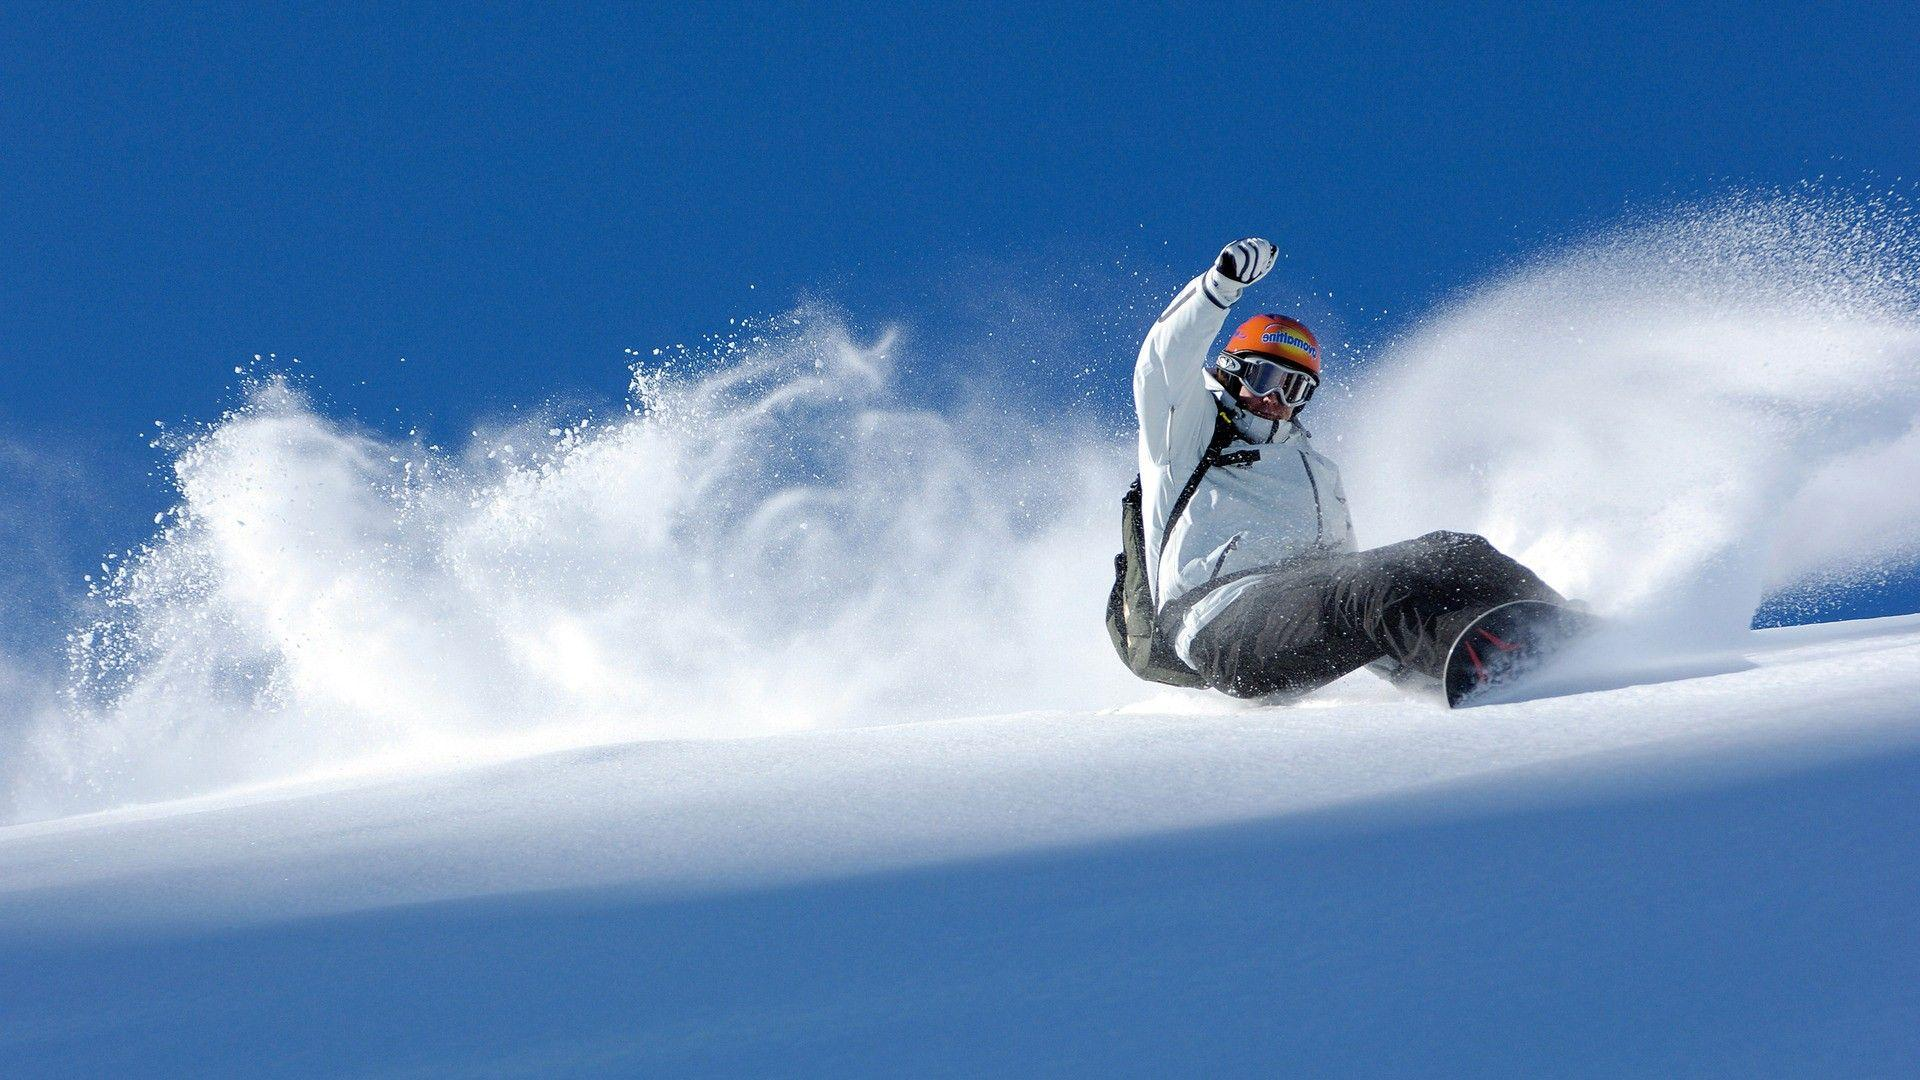 1920x1080 - Snowboarding Wallpapers 14